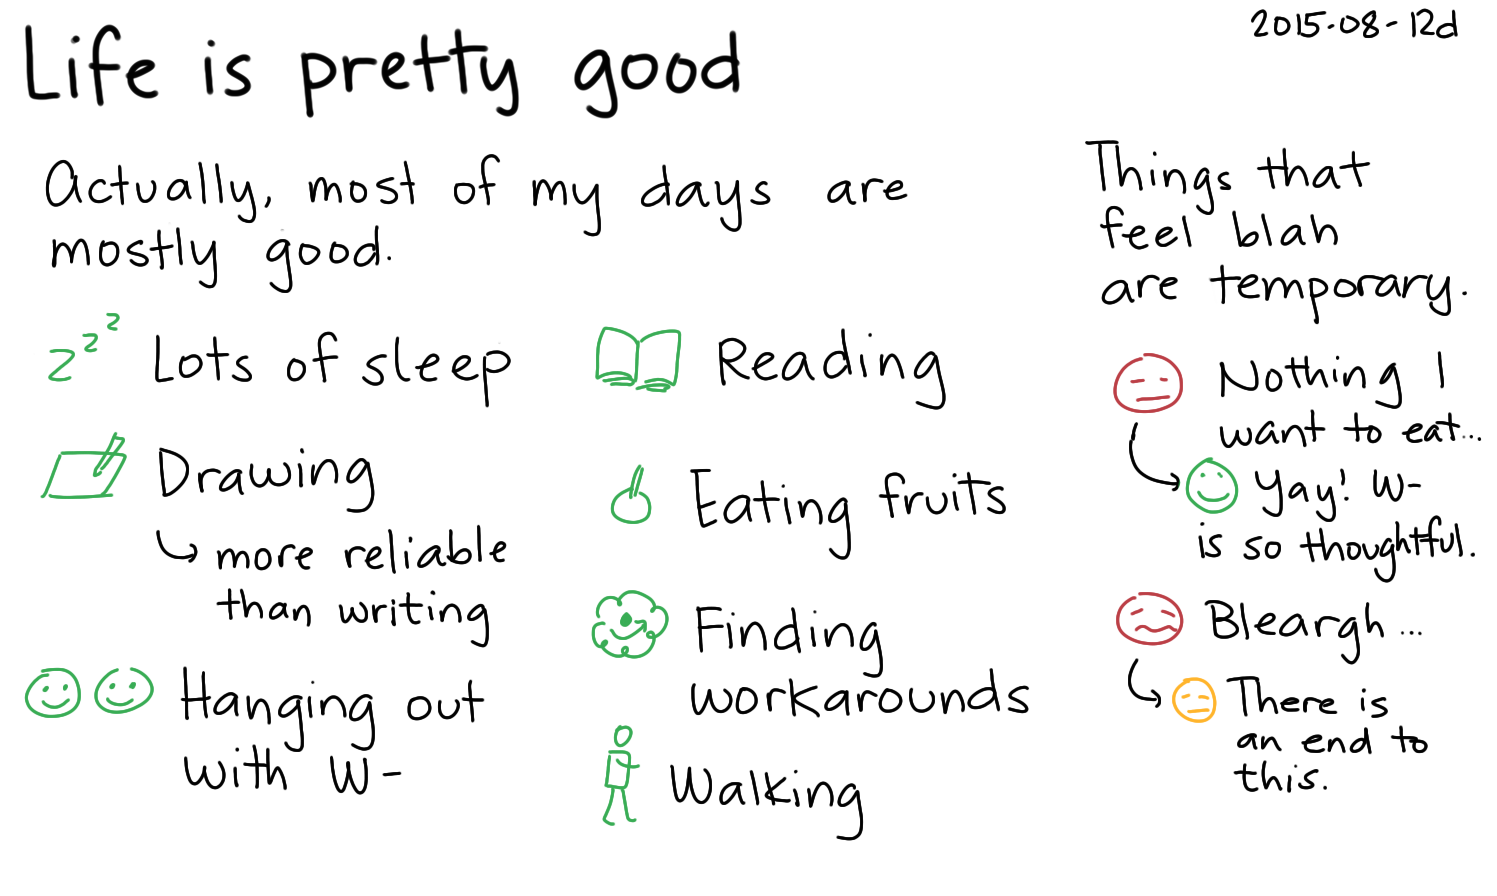 2015-08-12d Life is pretty good -- index card #life.png